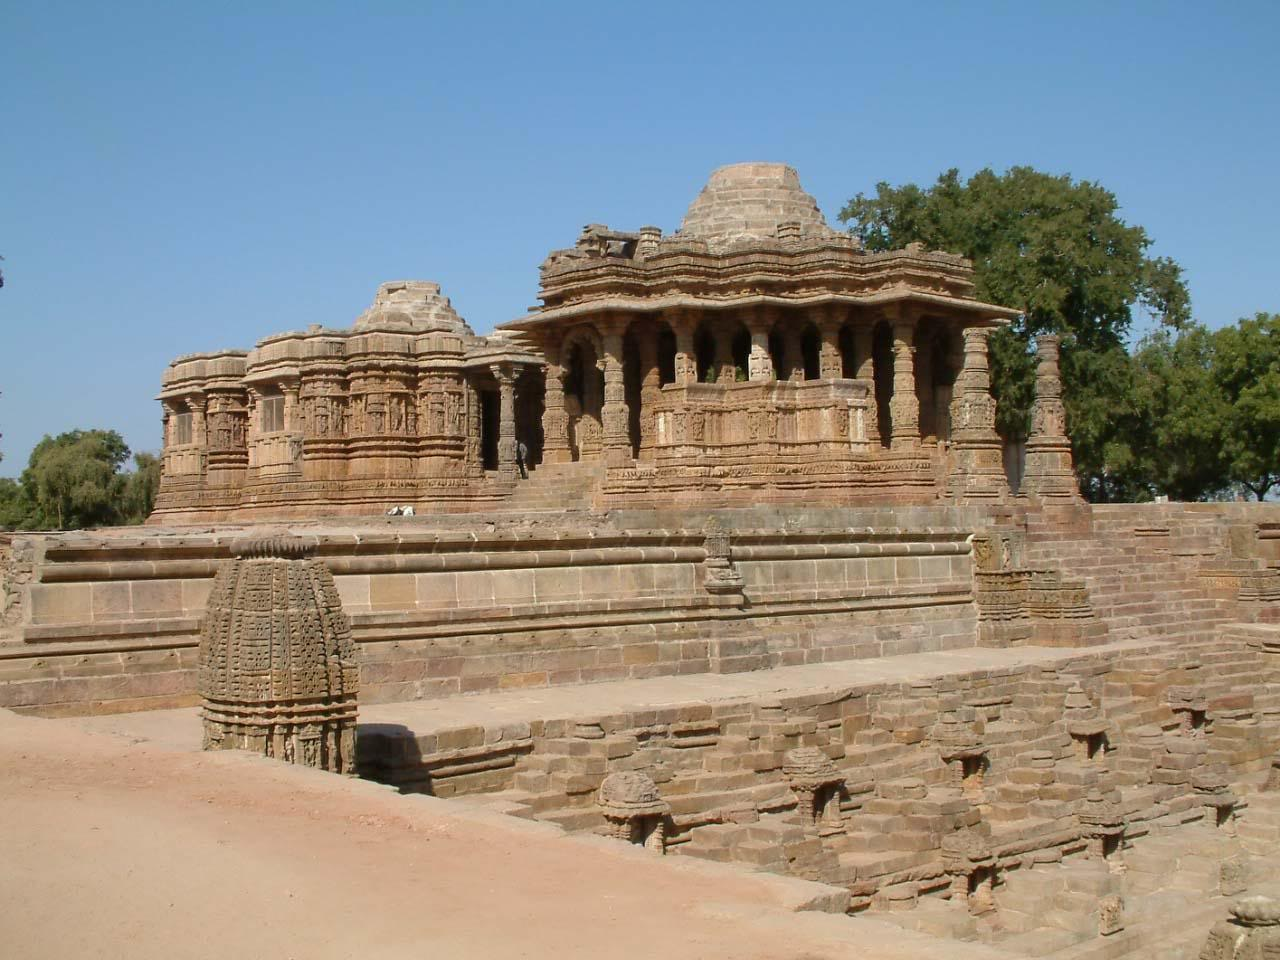 modhera temple Gujarat (gujarati: ગુજરાત, hindi: गुजरात) is a state in the western region of indialothal, near to ahmedabad and dholavira, near to kutch are sites of a harappan (indus) civilisation, which existed more than 4,000 years ago.